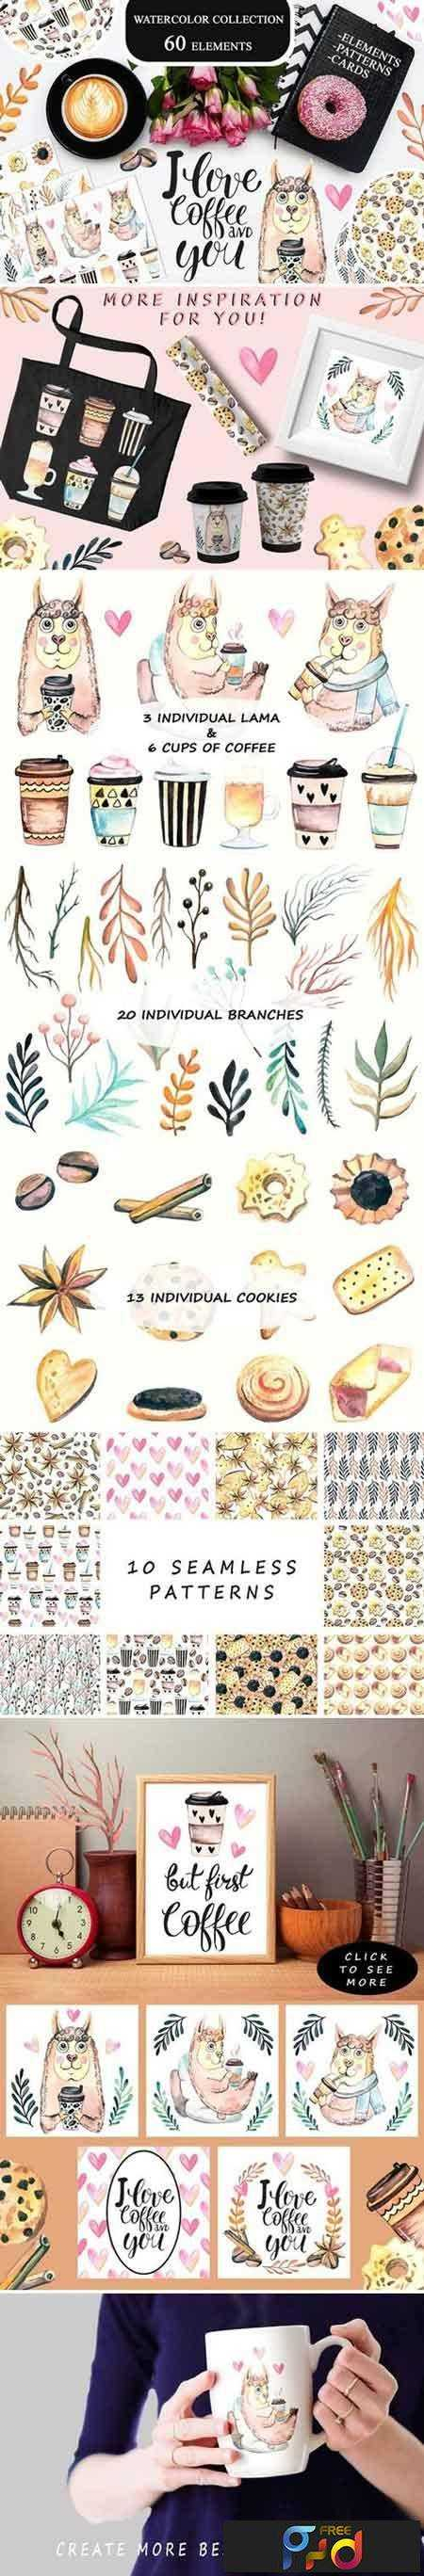 1802284 Watercolor Coffee Collection 2152114 1